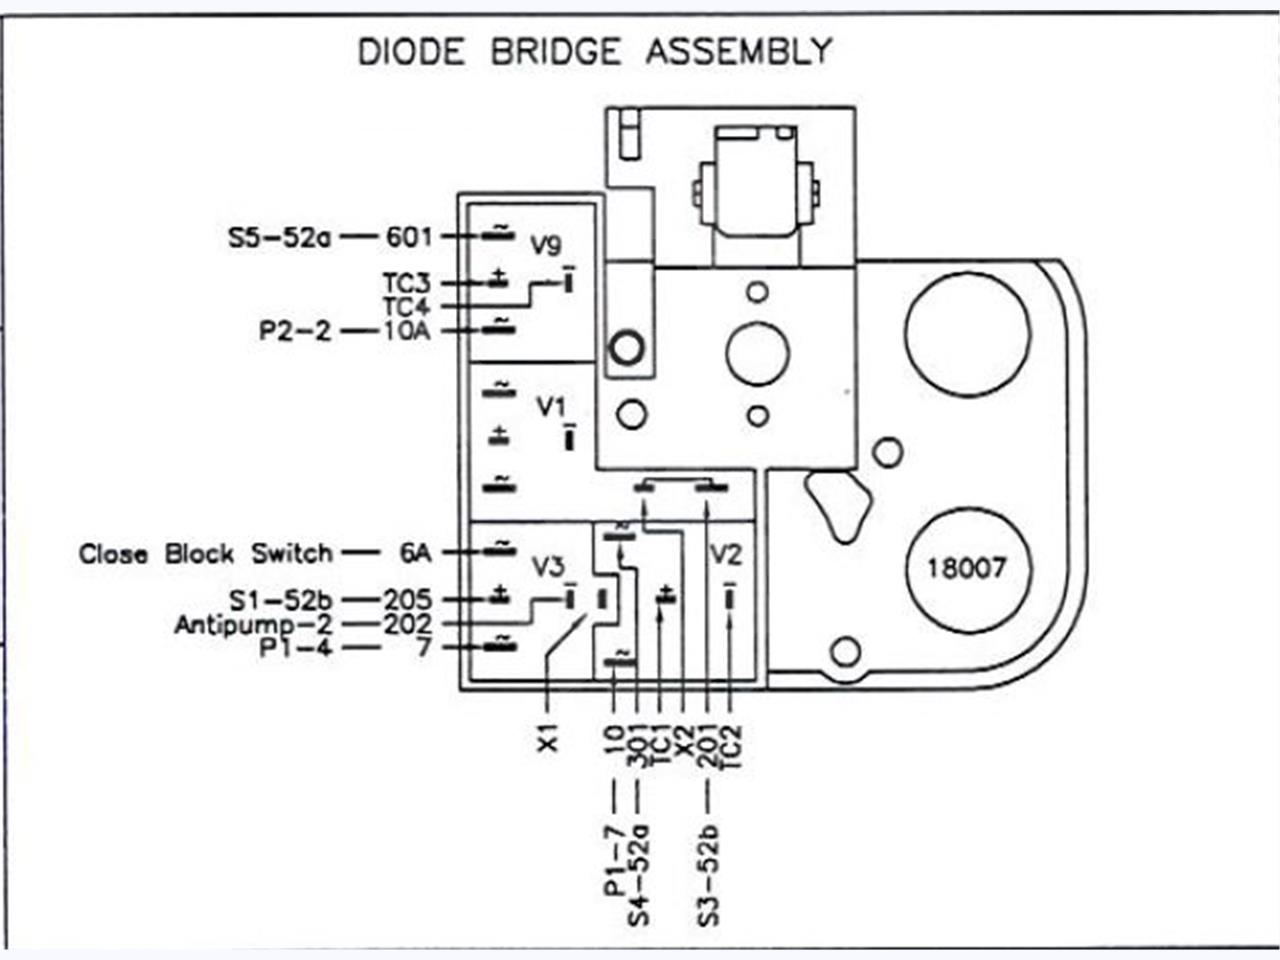 ABB / ITE / BBC ABB MAGNETIC SUPPORT DIODE BRIDGE